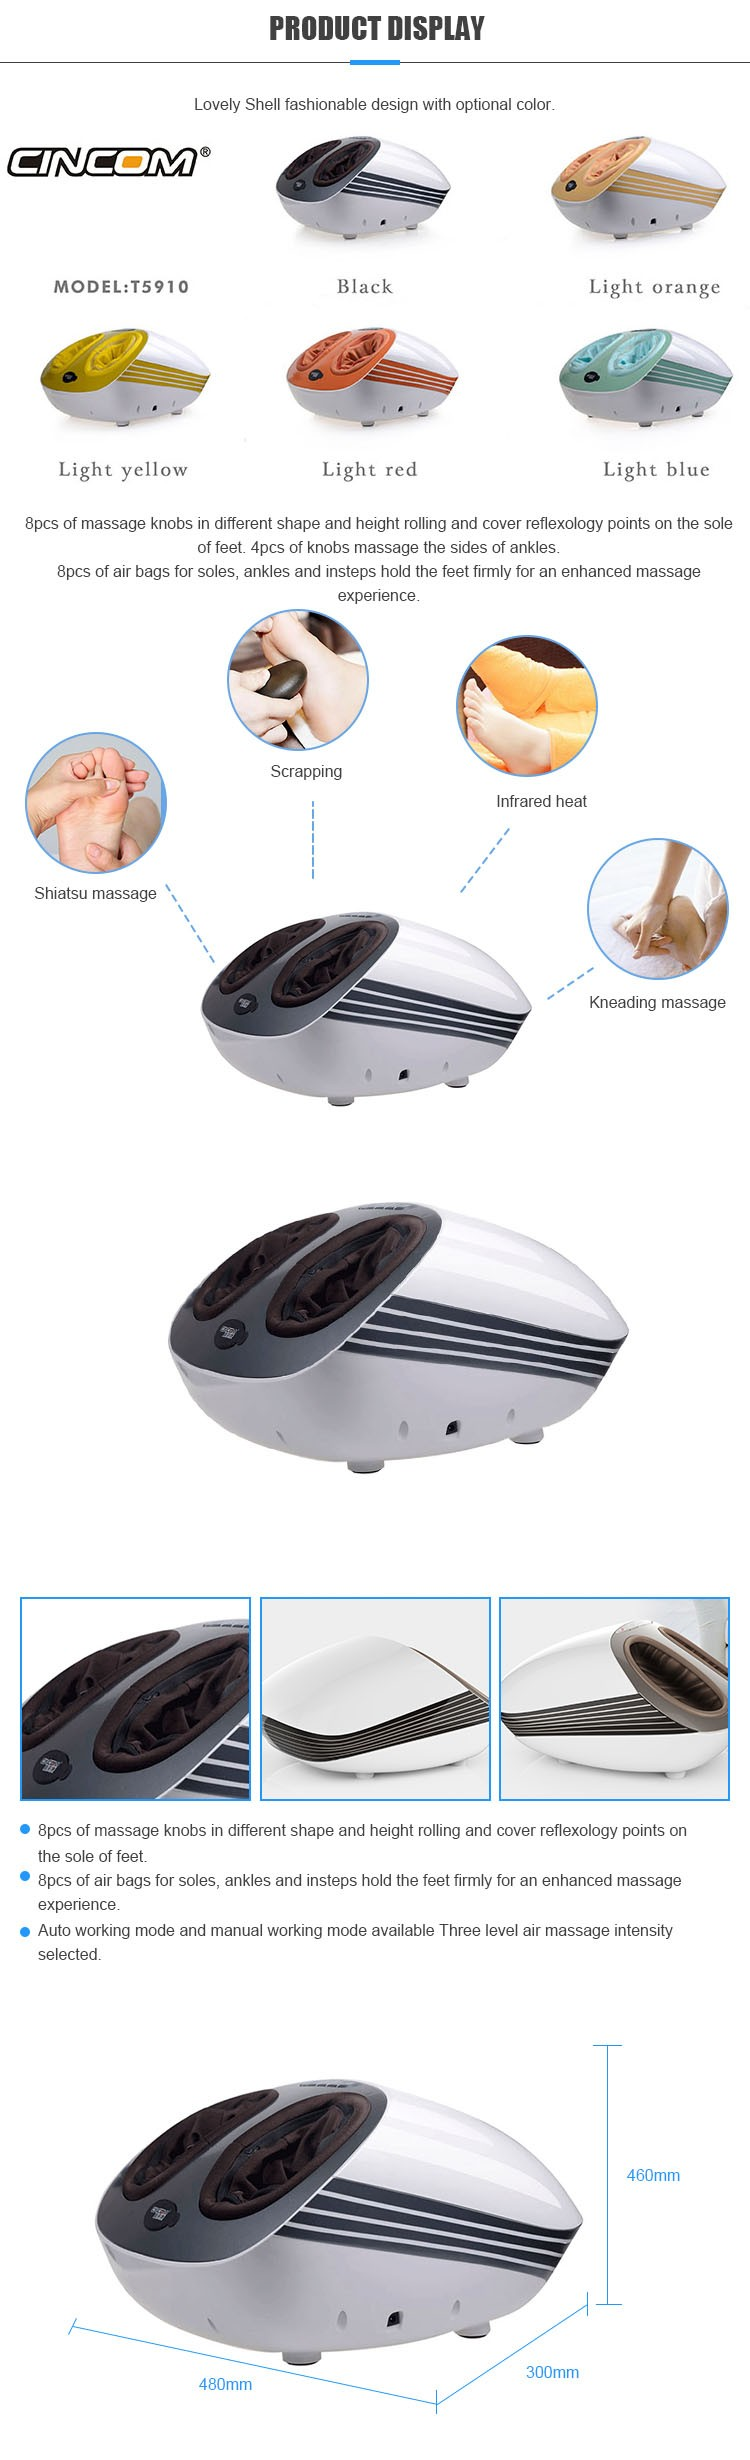 New Vibrating Foot Massage Health Care Machine Air Pressure Shiatsu Foot Massager